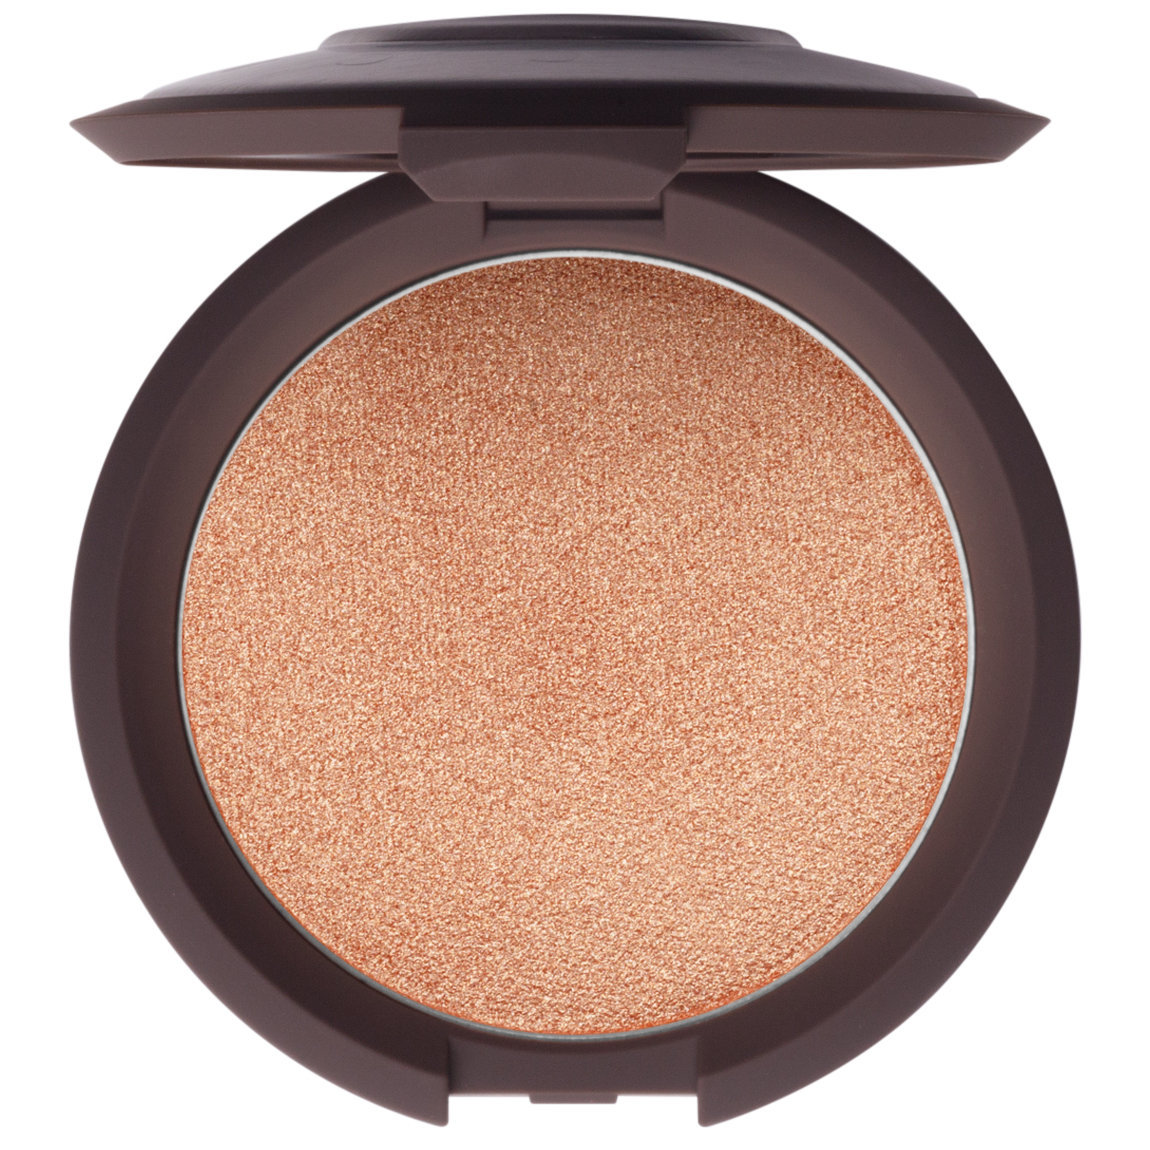 BECCA Shimmering Skin Perfector Pressed Champagne Pop product smear.